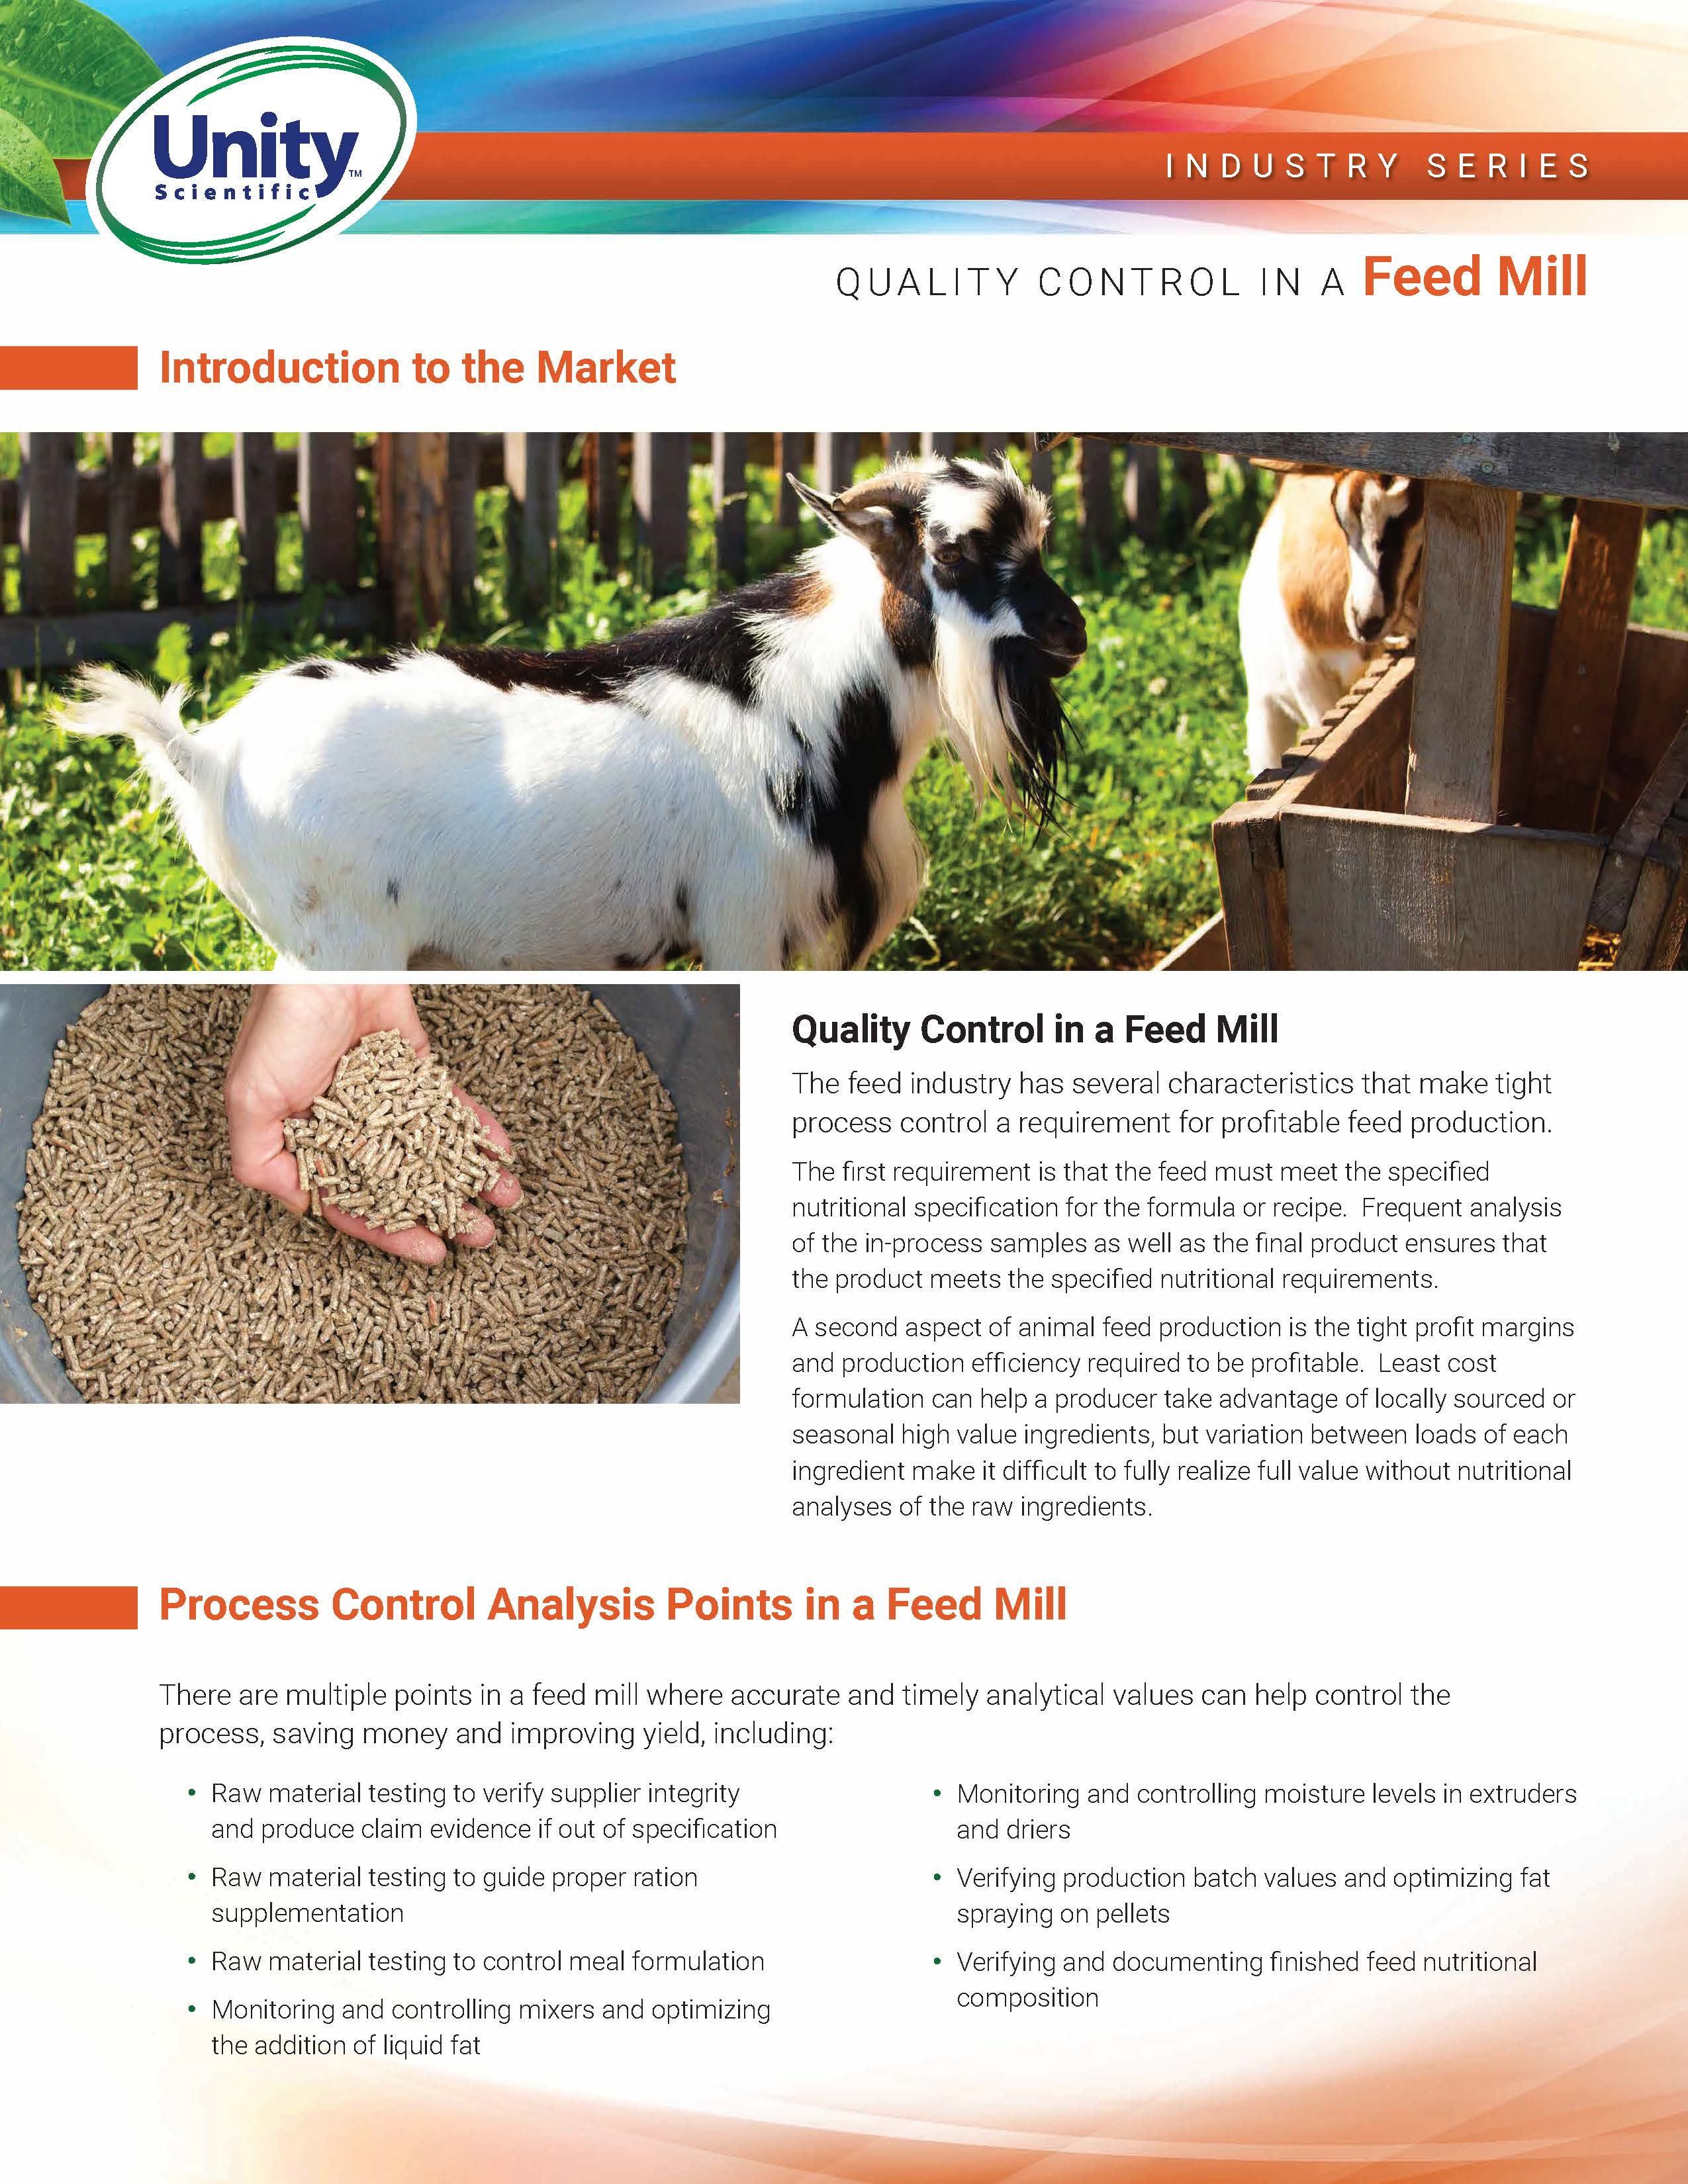 Industry Series - Quality Control In A Feed Mill